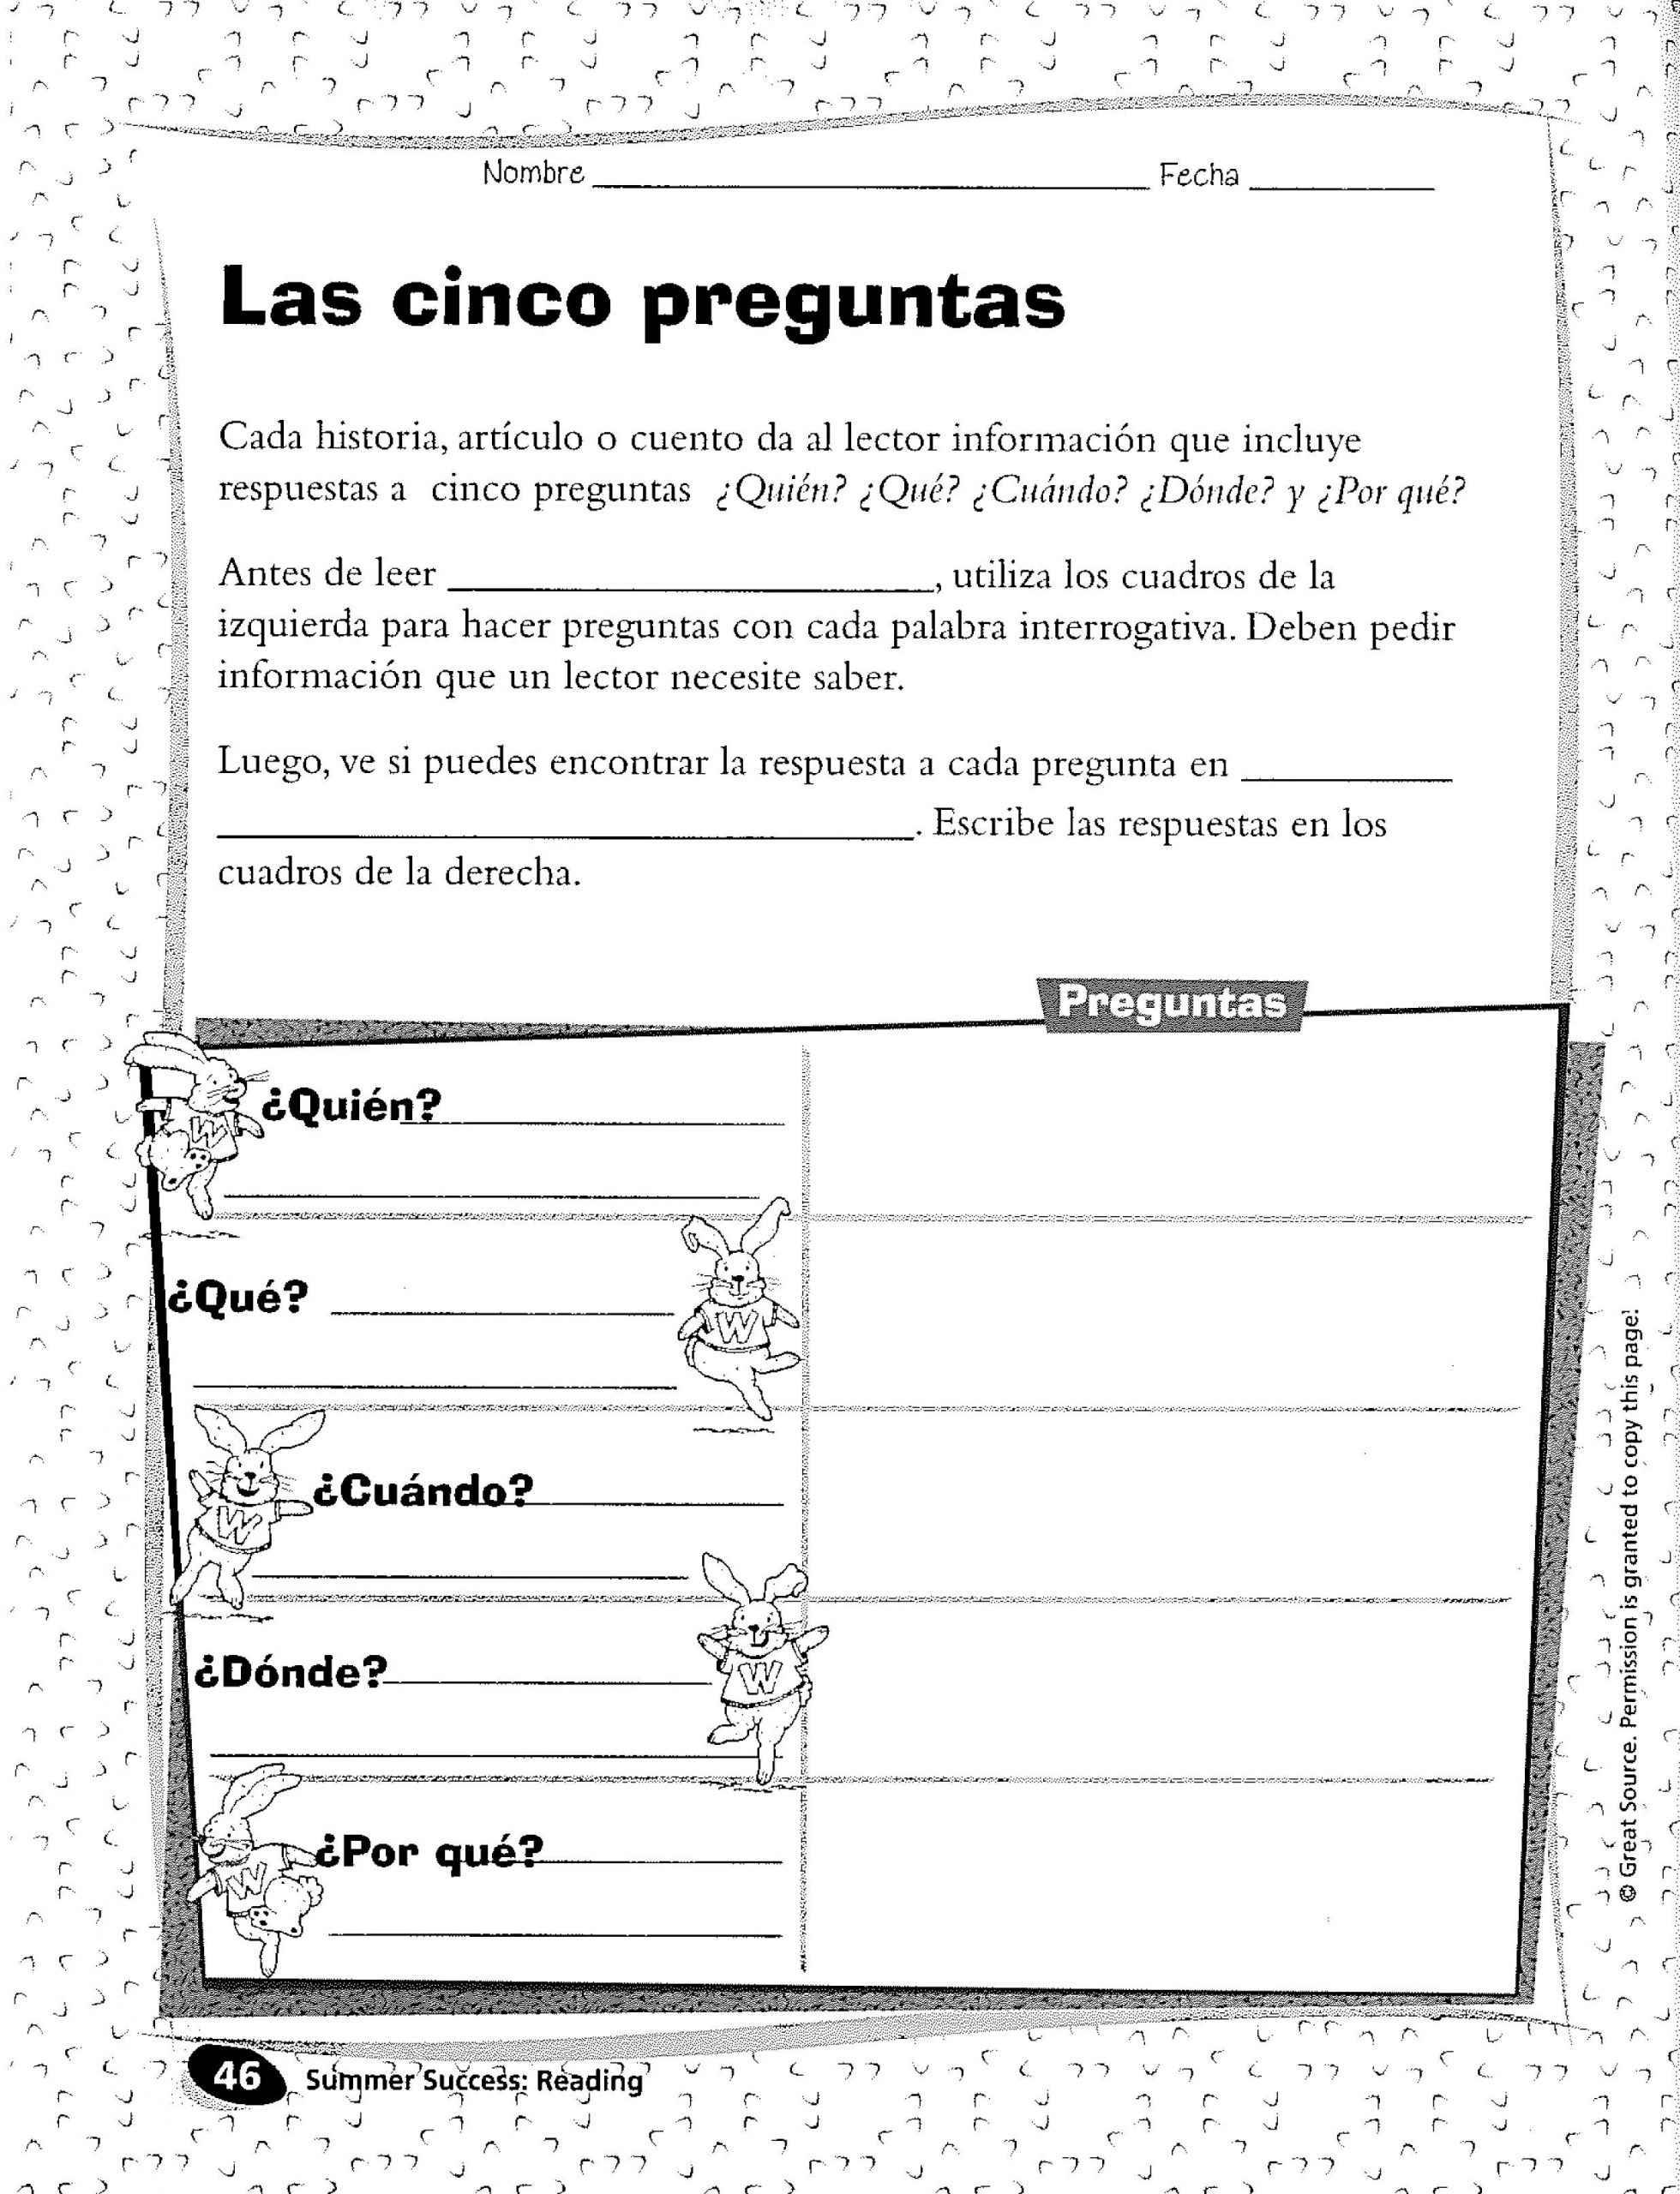 Prediction Worksheets for 3rd Grade Spanish Activity Making Predictions Grades 3 6 Download